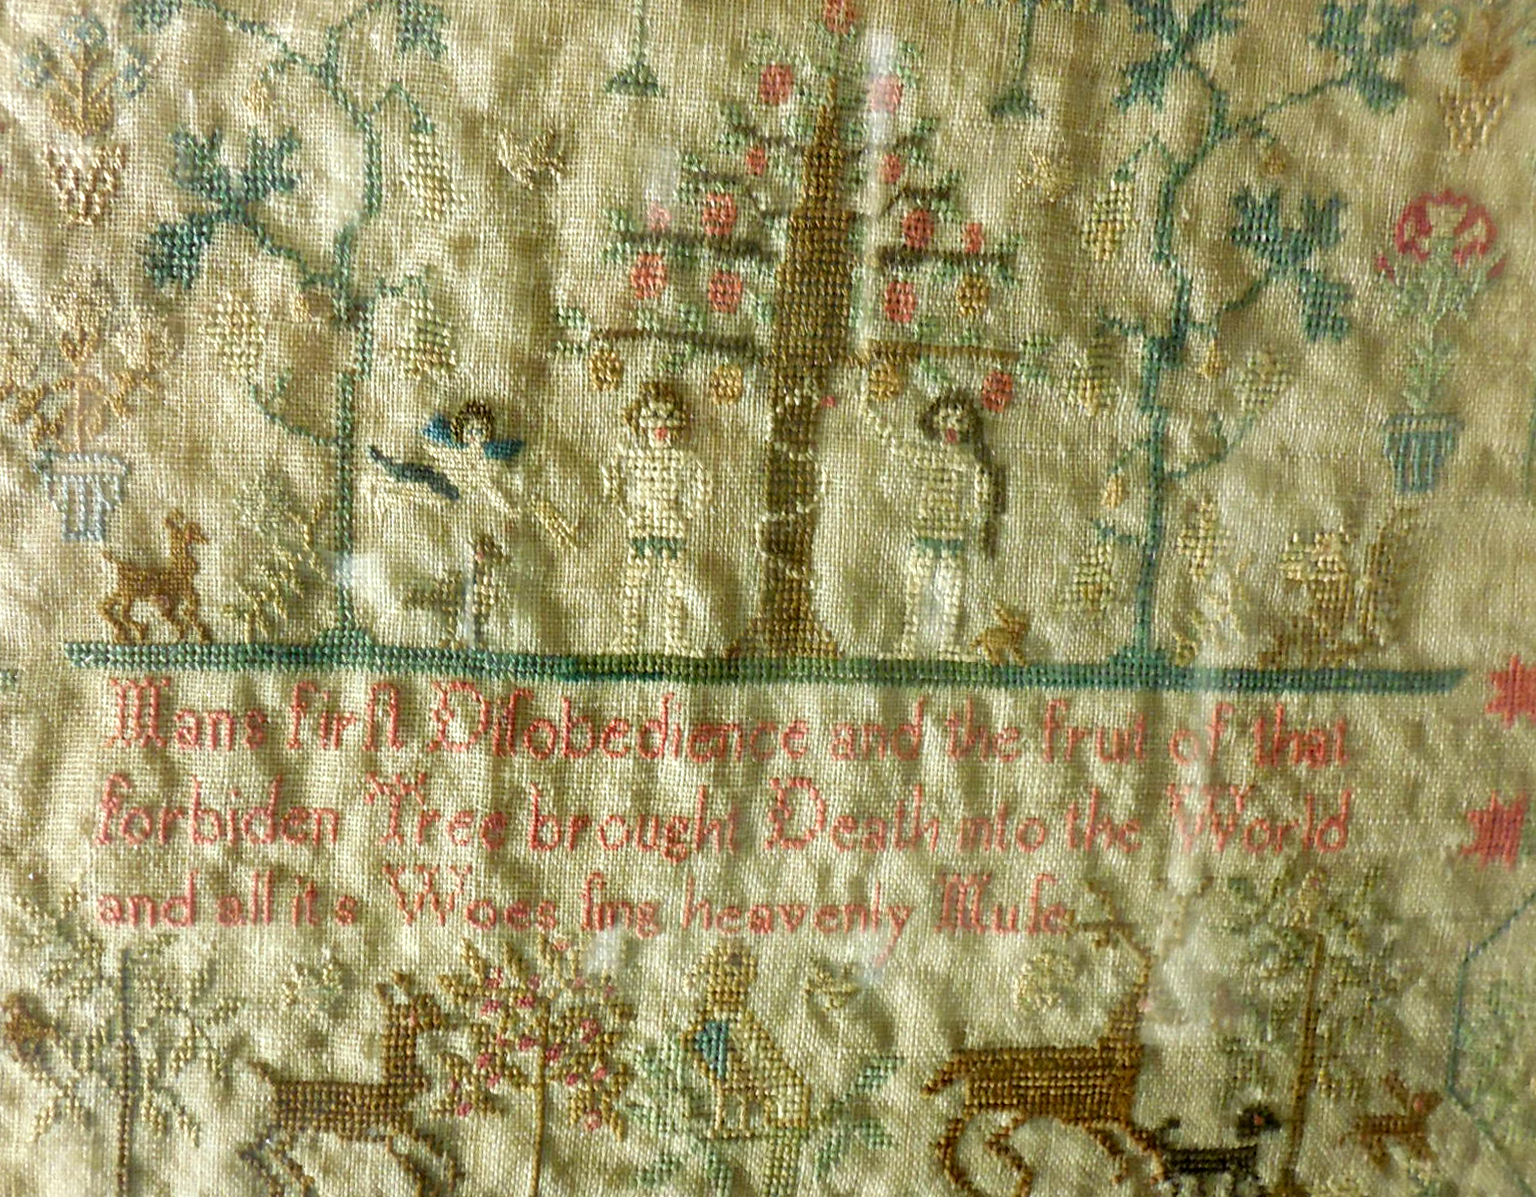 Opening Reception for Stitch By Stitch: Needlework from the Wistariahurst Collection